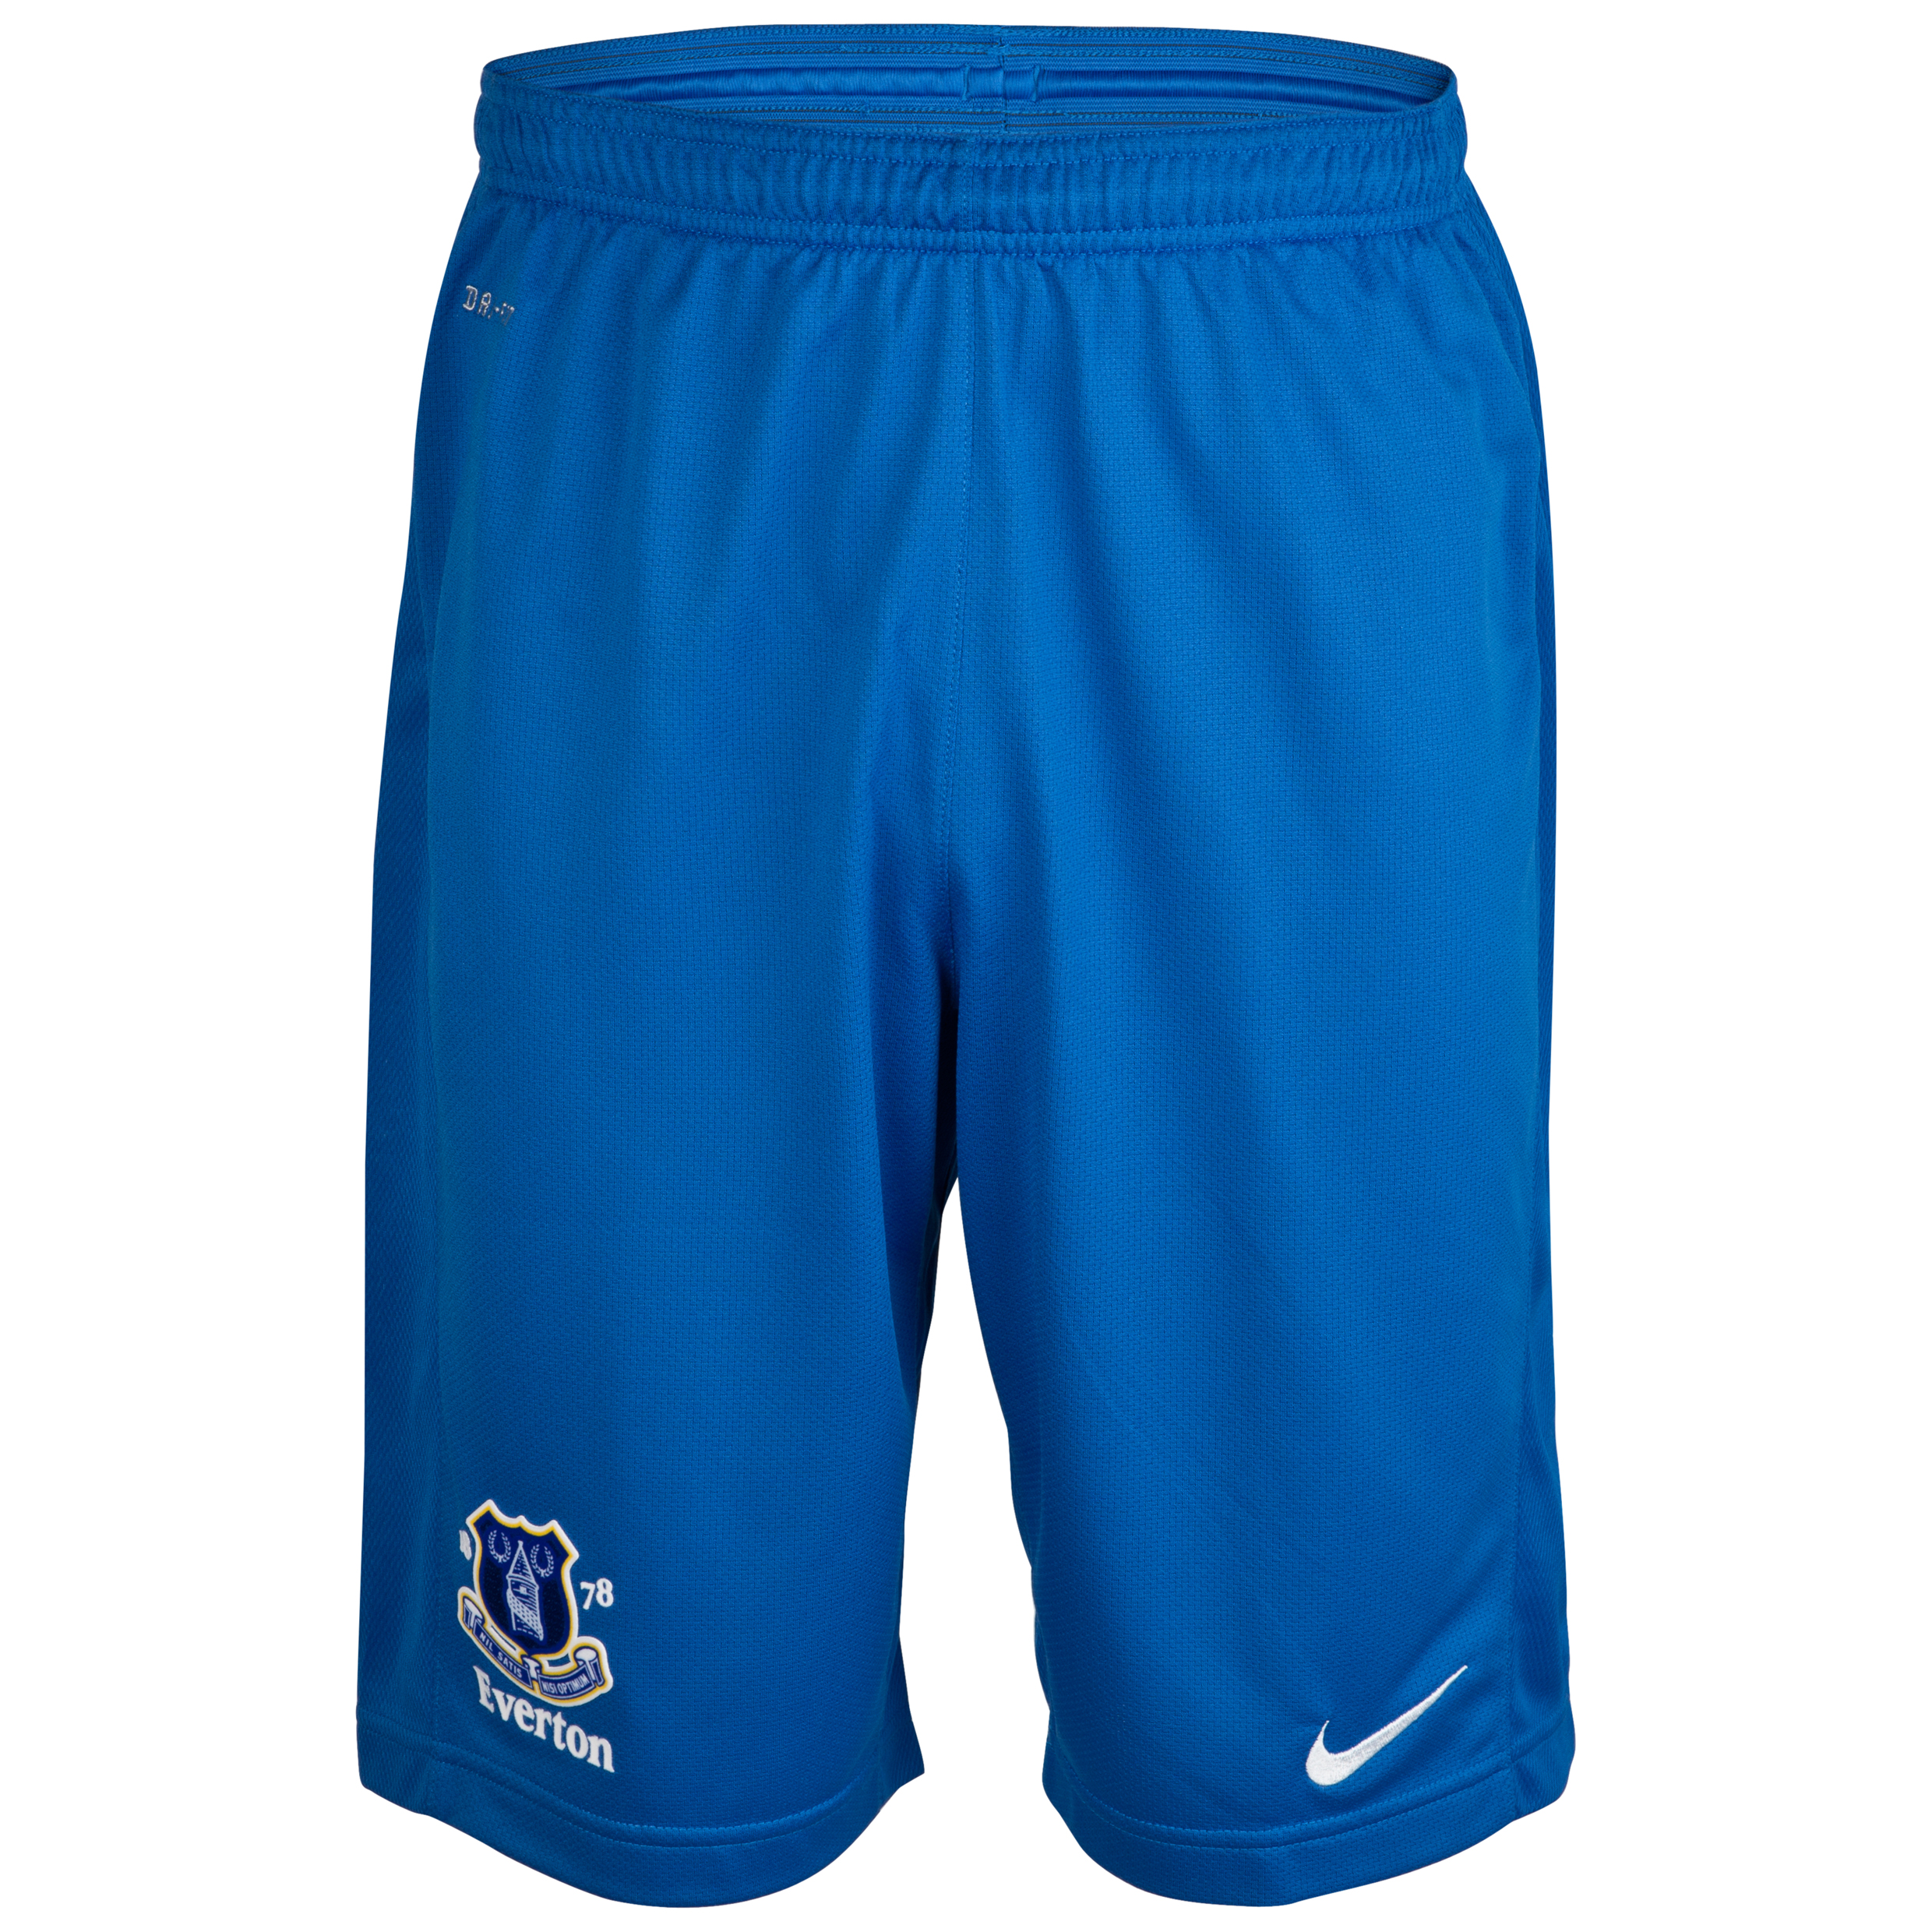 Everton Longer Knit Short  - Royal Blue/White